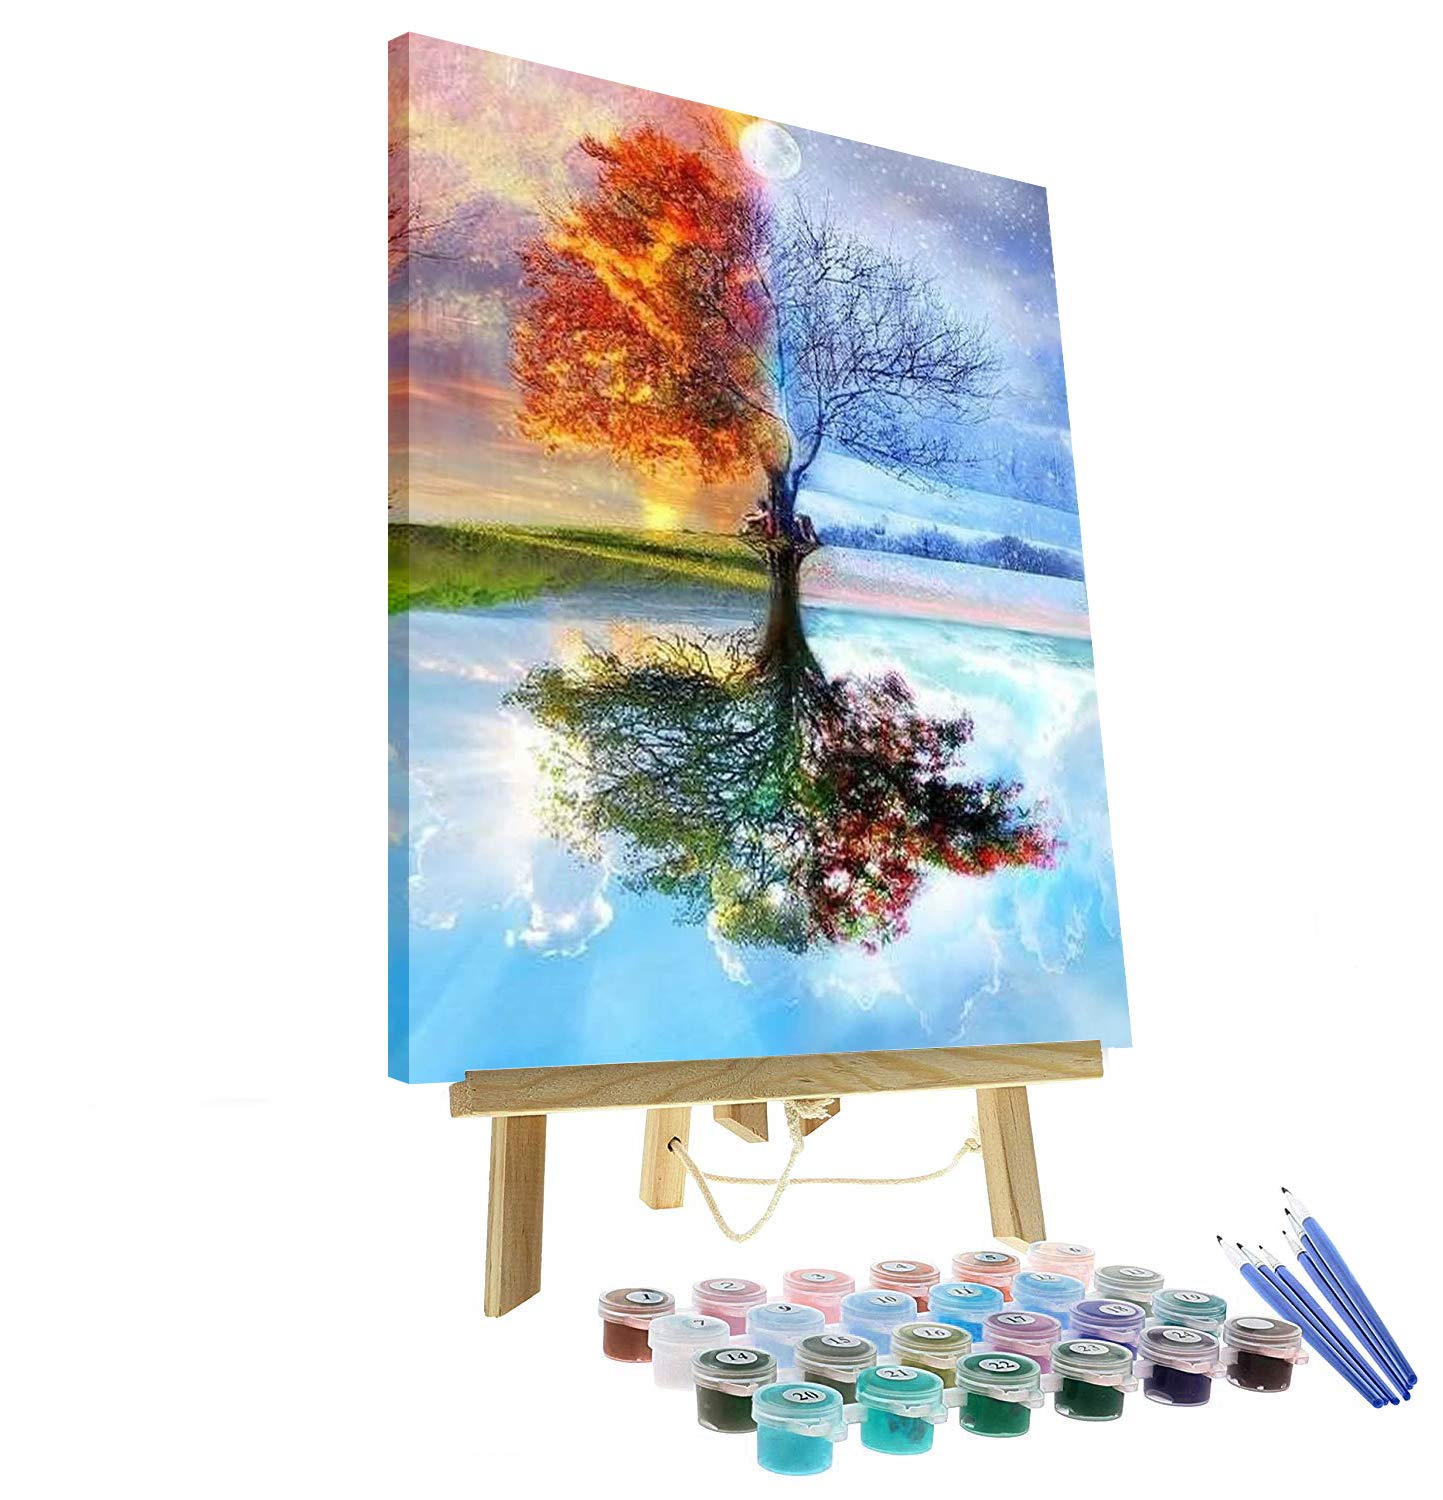 DIY Oil Painting Paint by Number Kit for Adults Kids Beginner - Four Season Tree of Life 16''x20'' with Wooden Frame and Easel